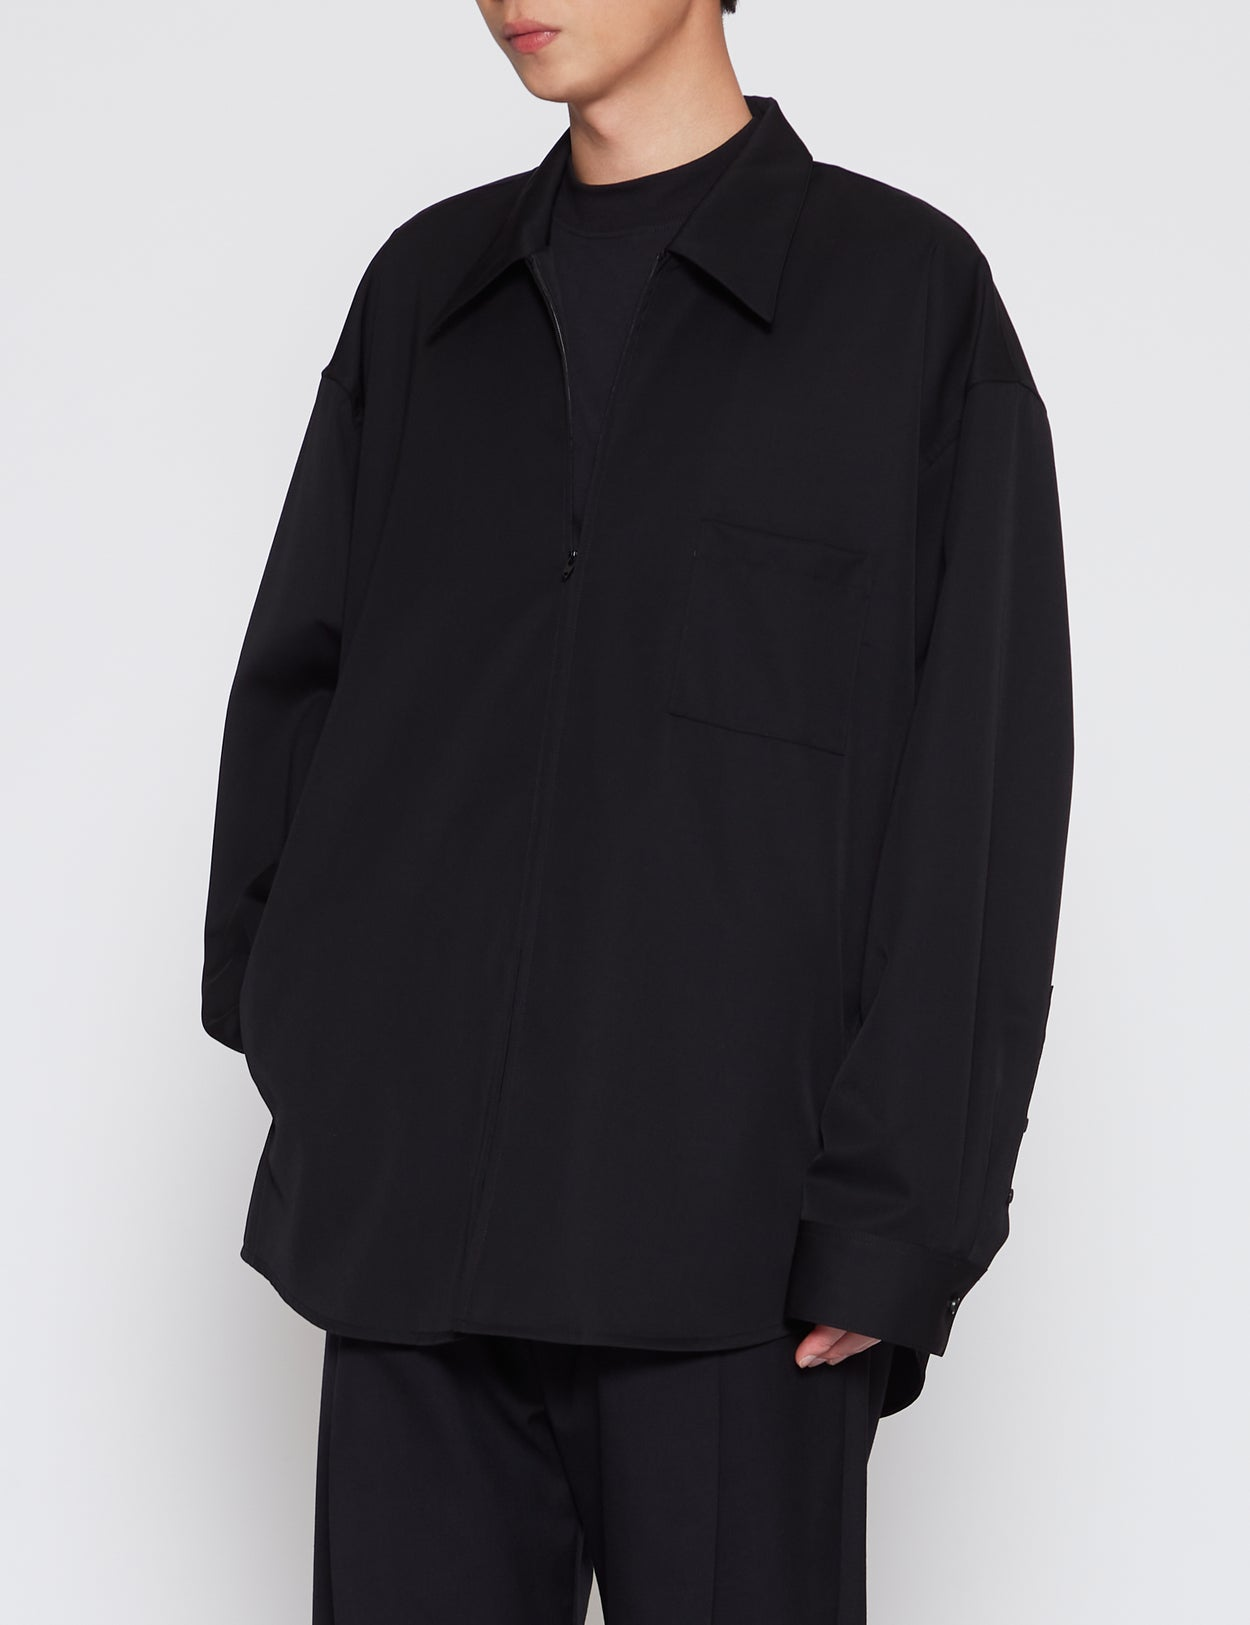 BLACK OVERSIZED ZIP SHIRT JACKET